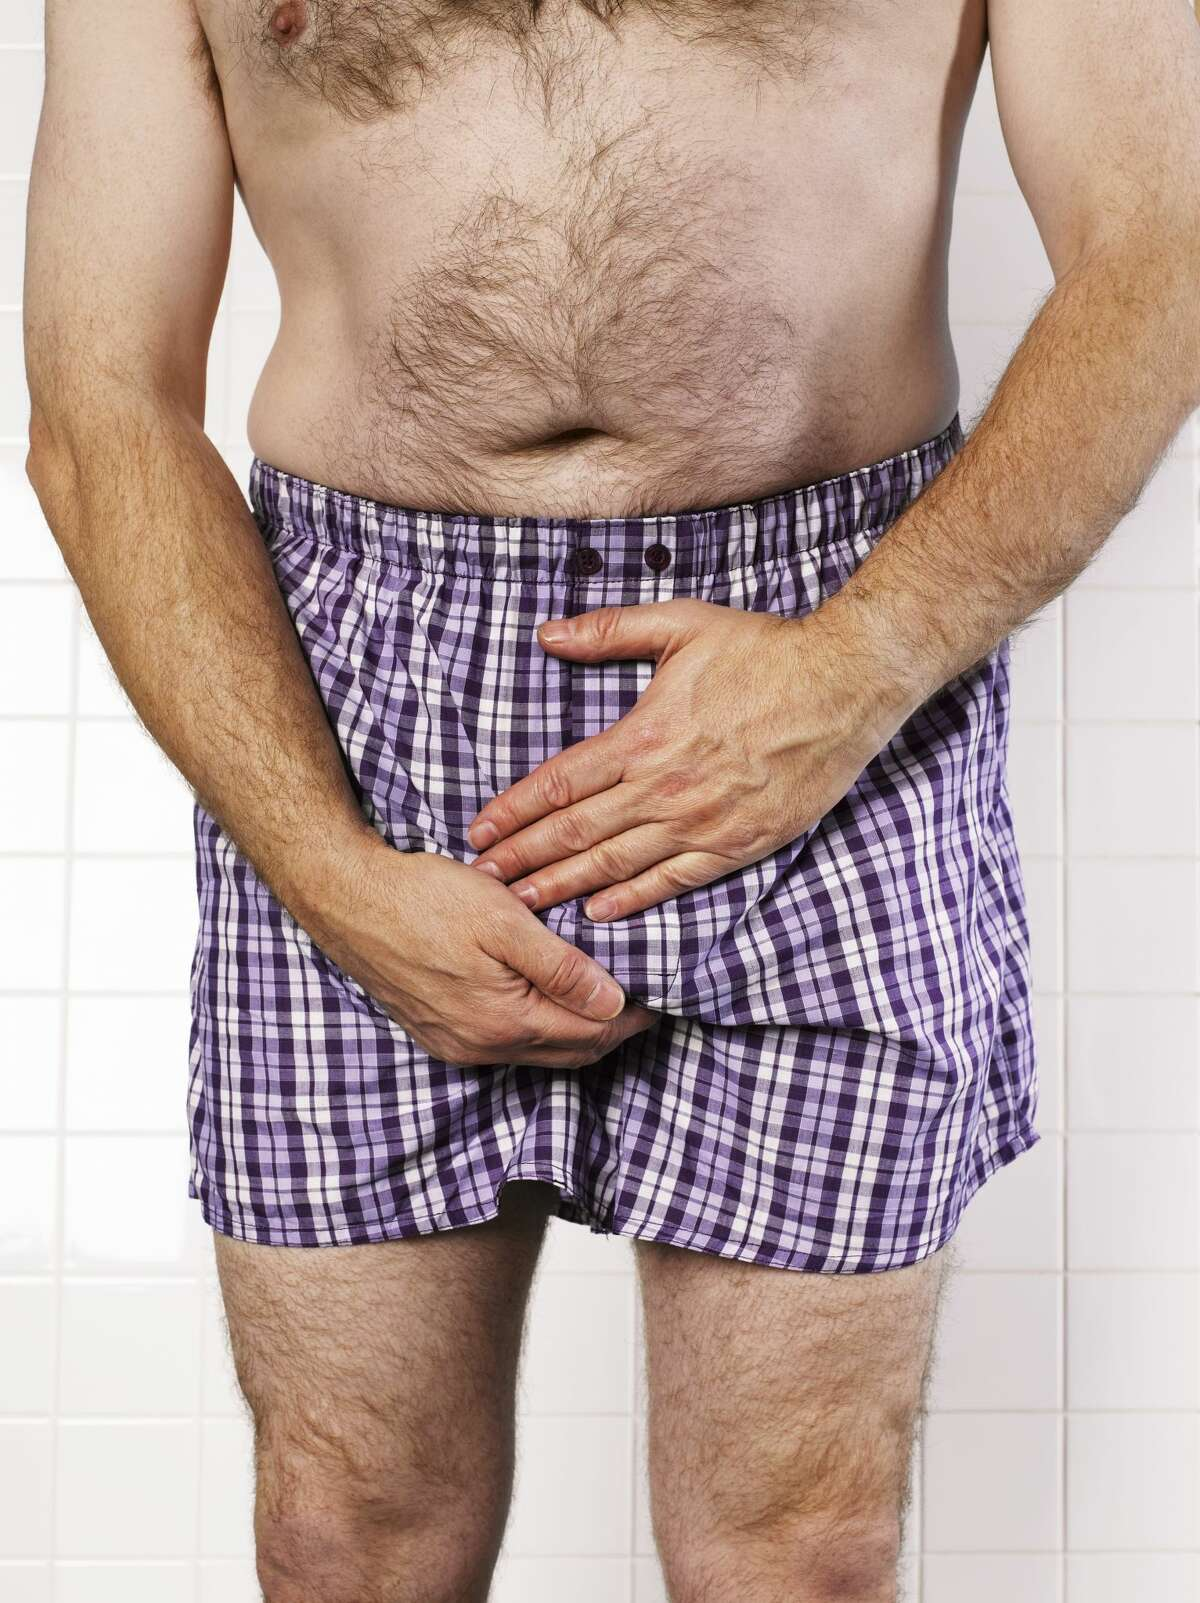 Guys should start self-examinations for testicular irregularities You've like already been aware of your boys downstairs for some time -- at least since pre-puberty -- but actually taking a more intent pass down there could be a serious health matter. Testicular cancer chances are higher after 30 years old.